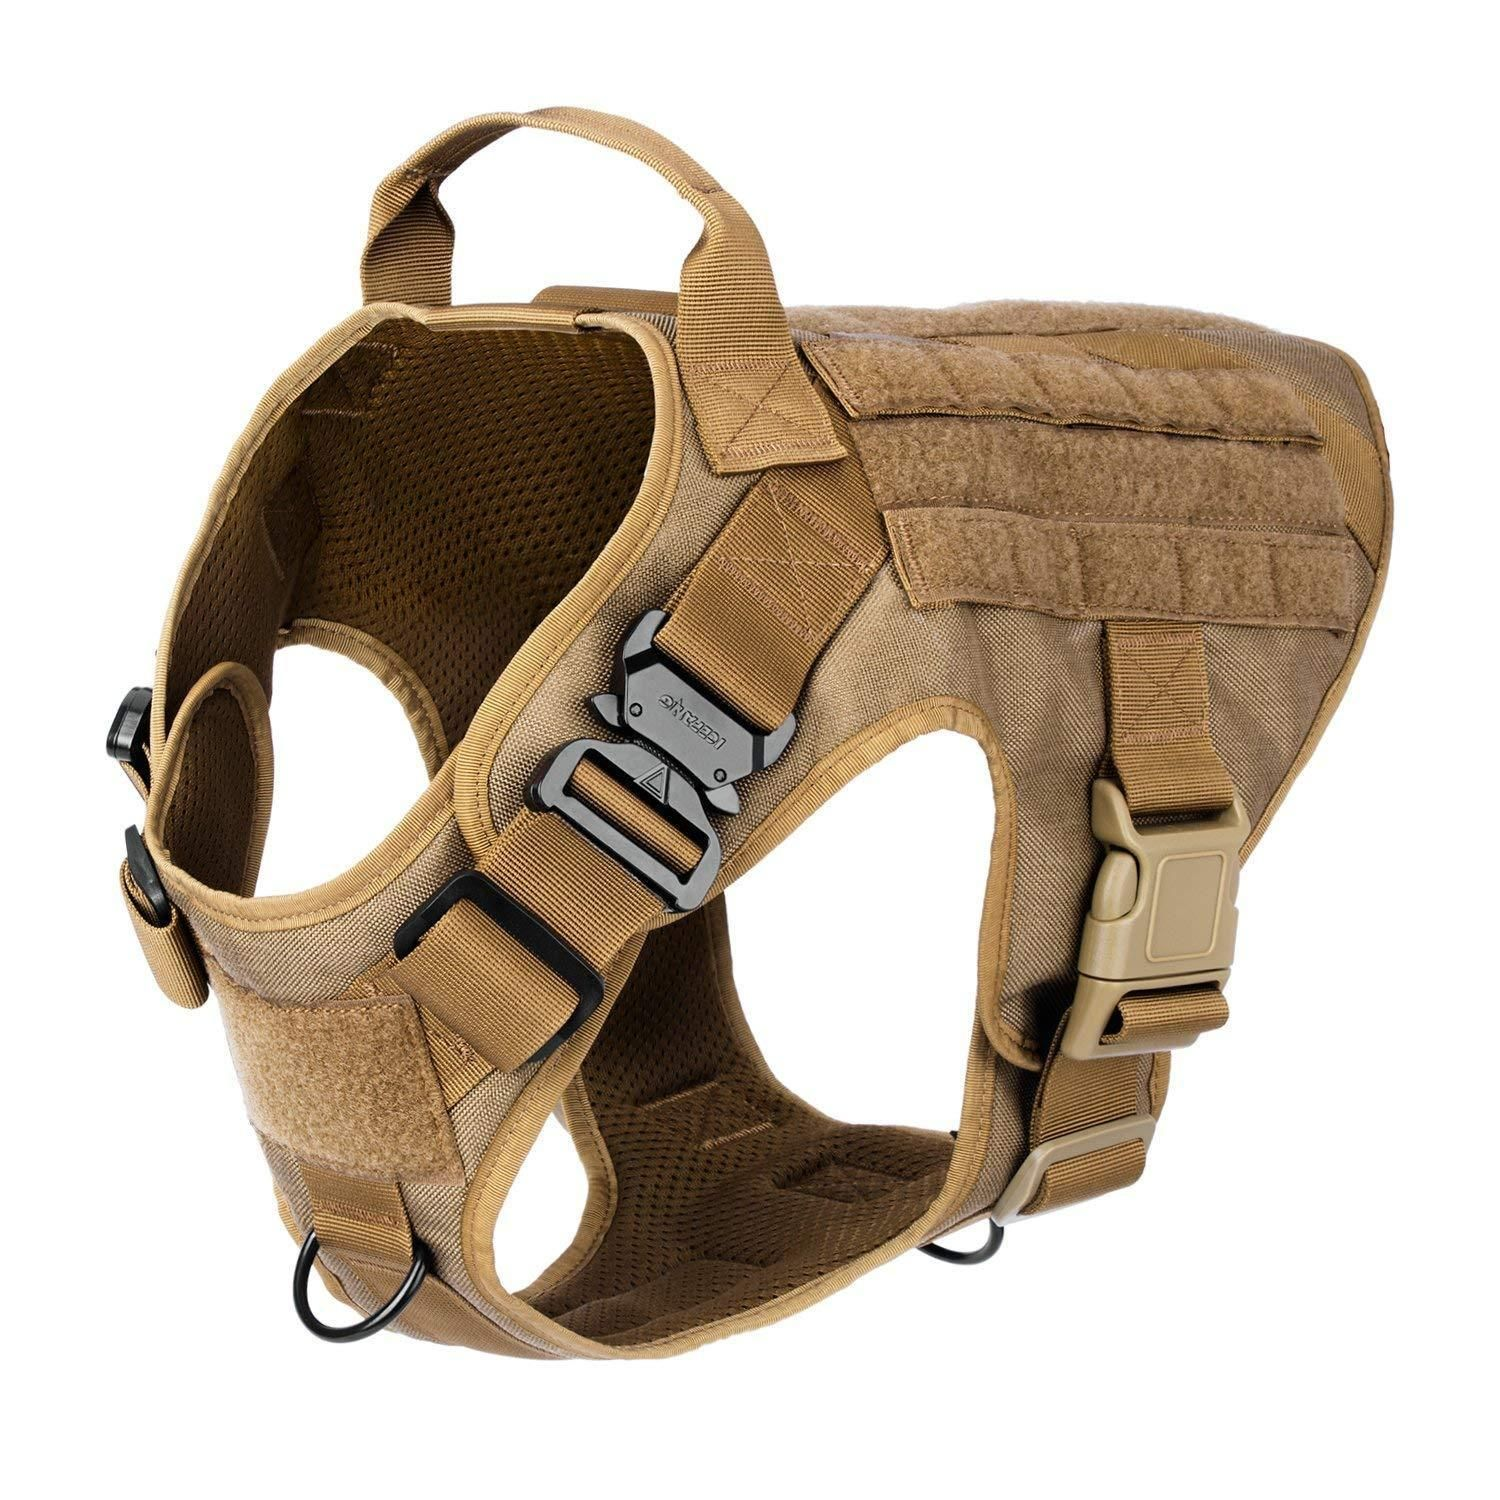 Tactical Dog Harness, Working Dog Vest,No Pulling Front